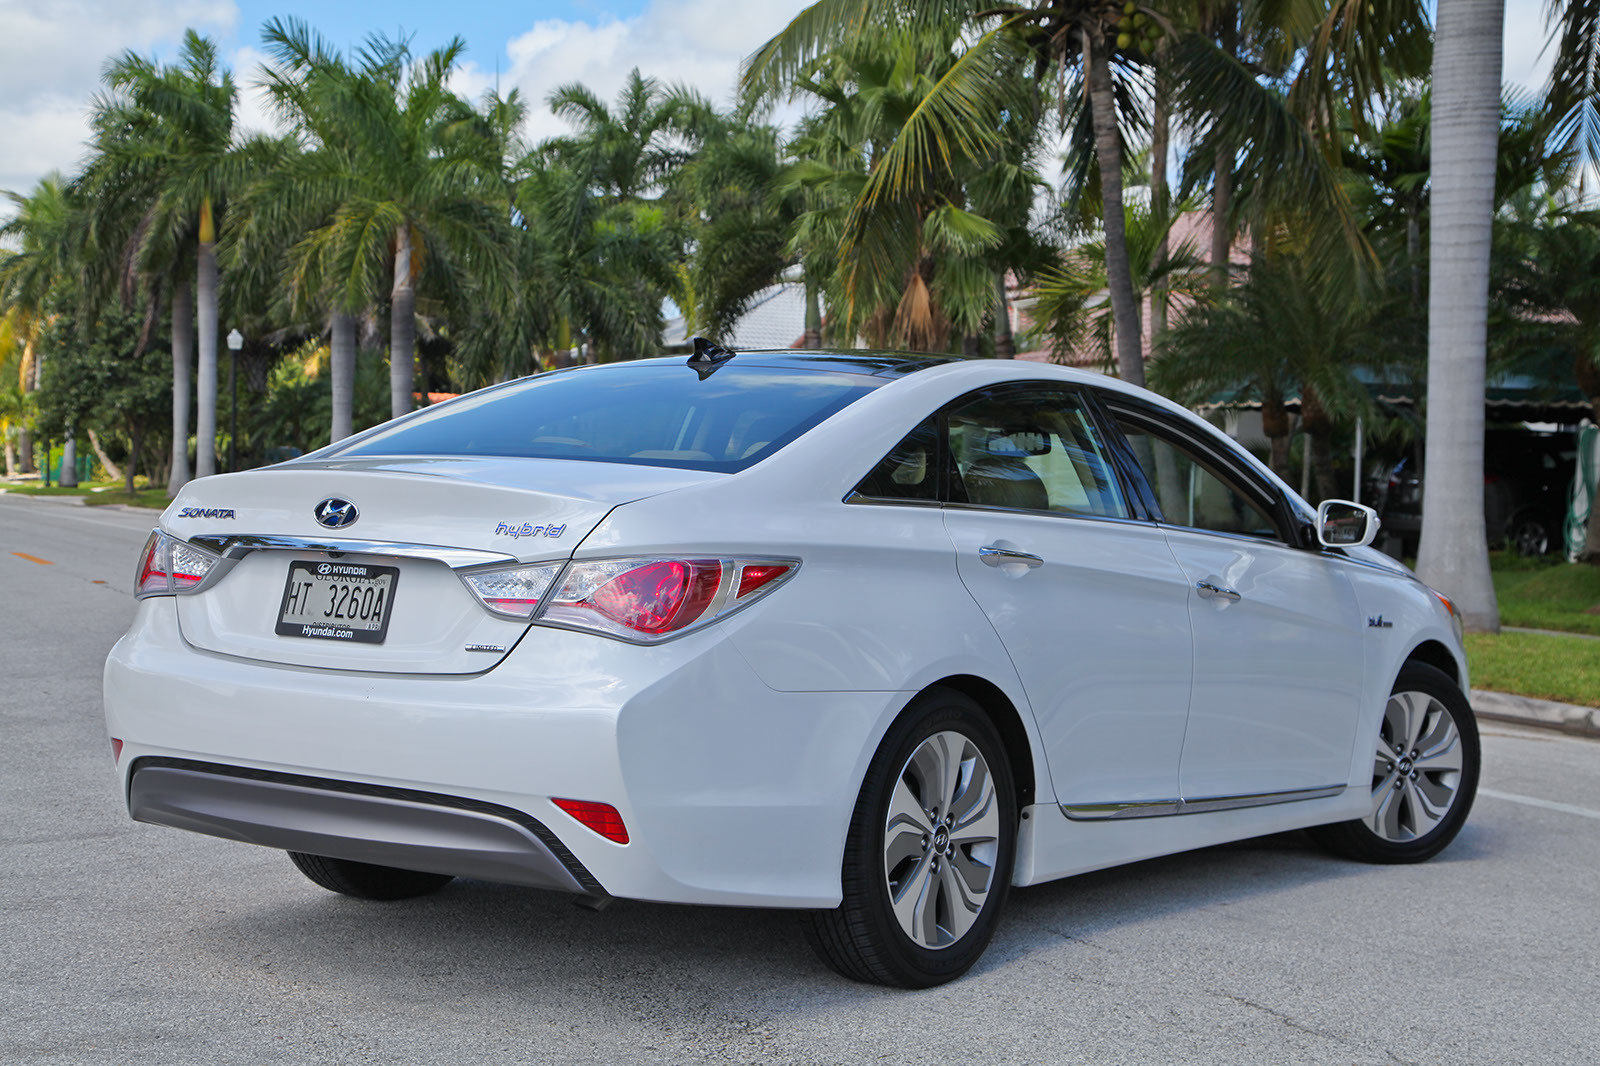 2013 hyundai sonata hybrid limited picture 526977 car review top speed. Black Bedroom Furniture Sets. Home Design Ideas